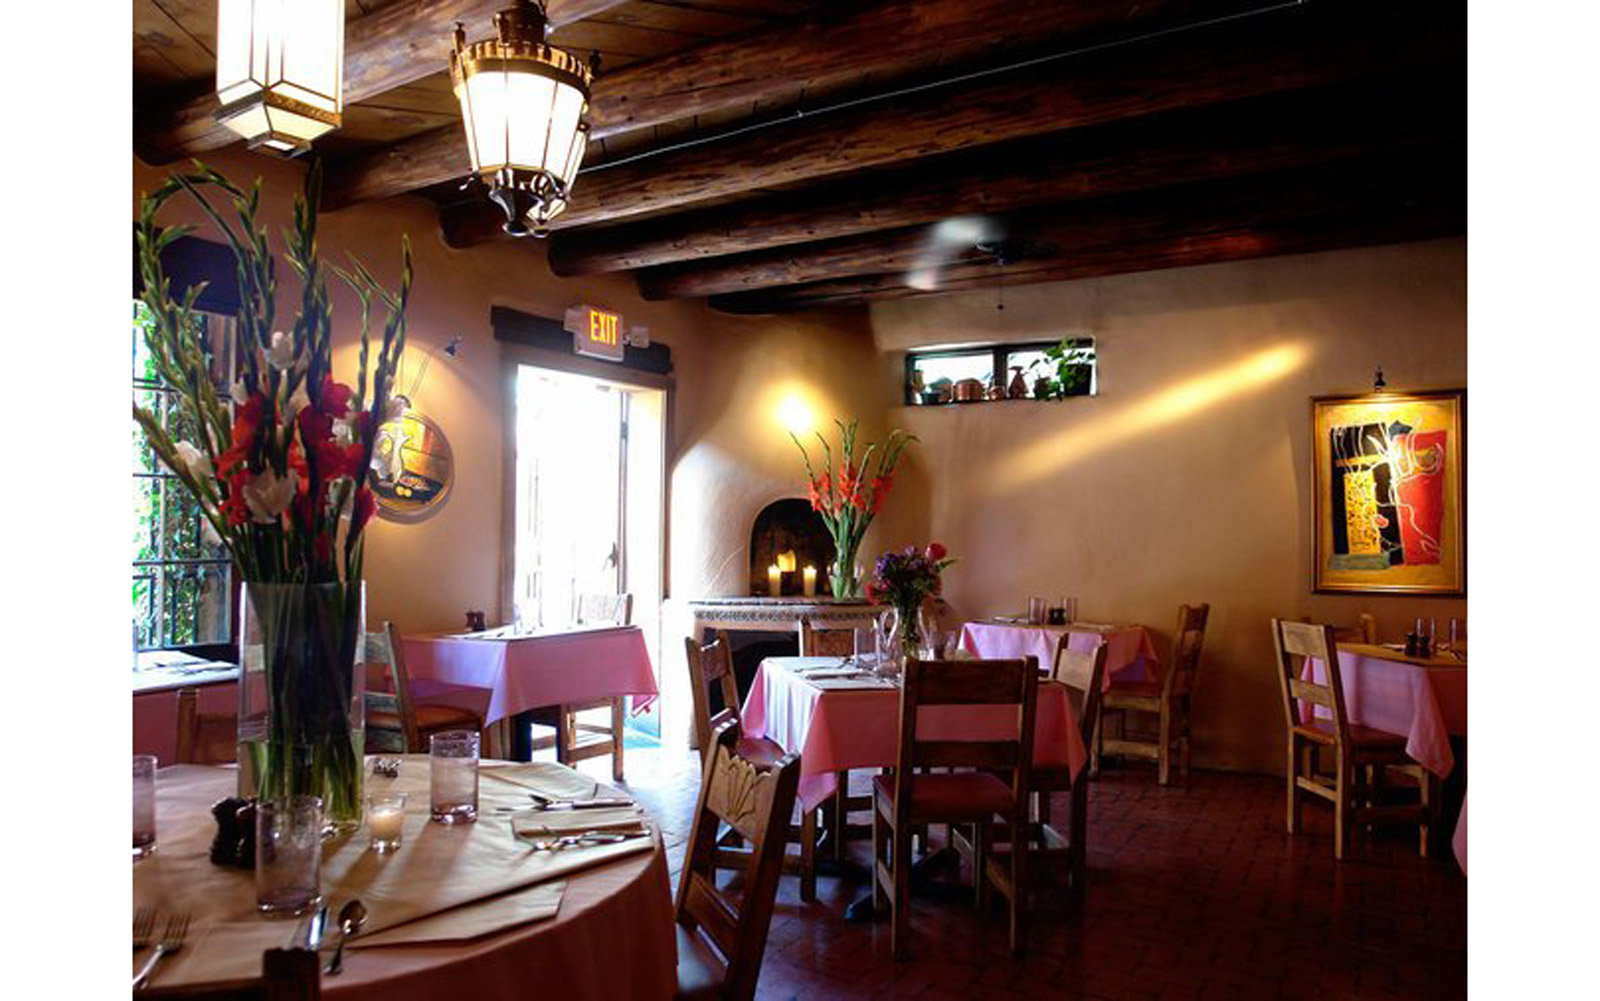 New Mexico – The Pink Adobe